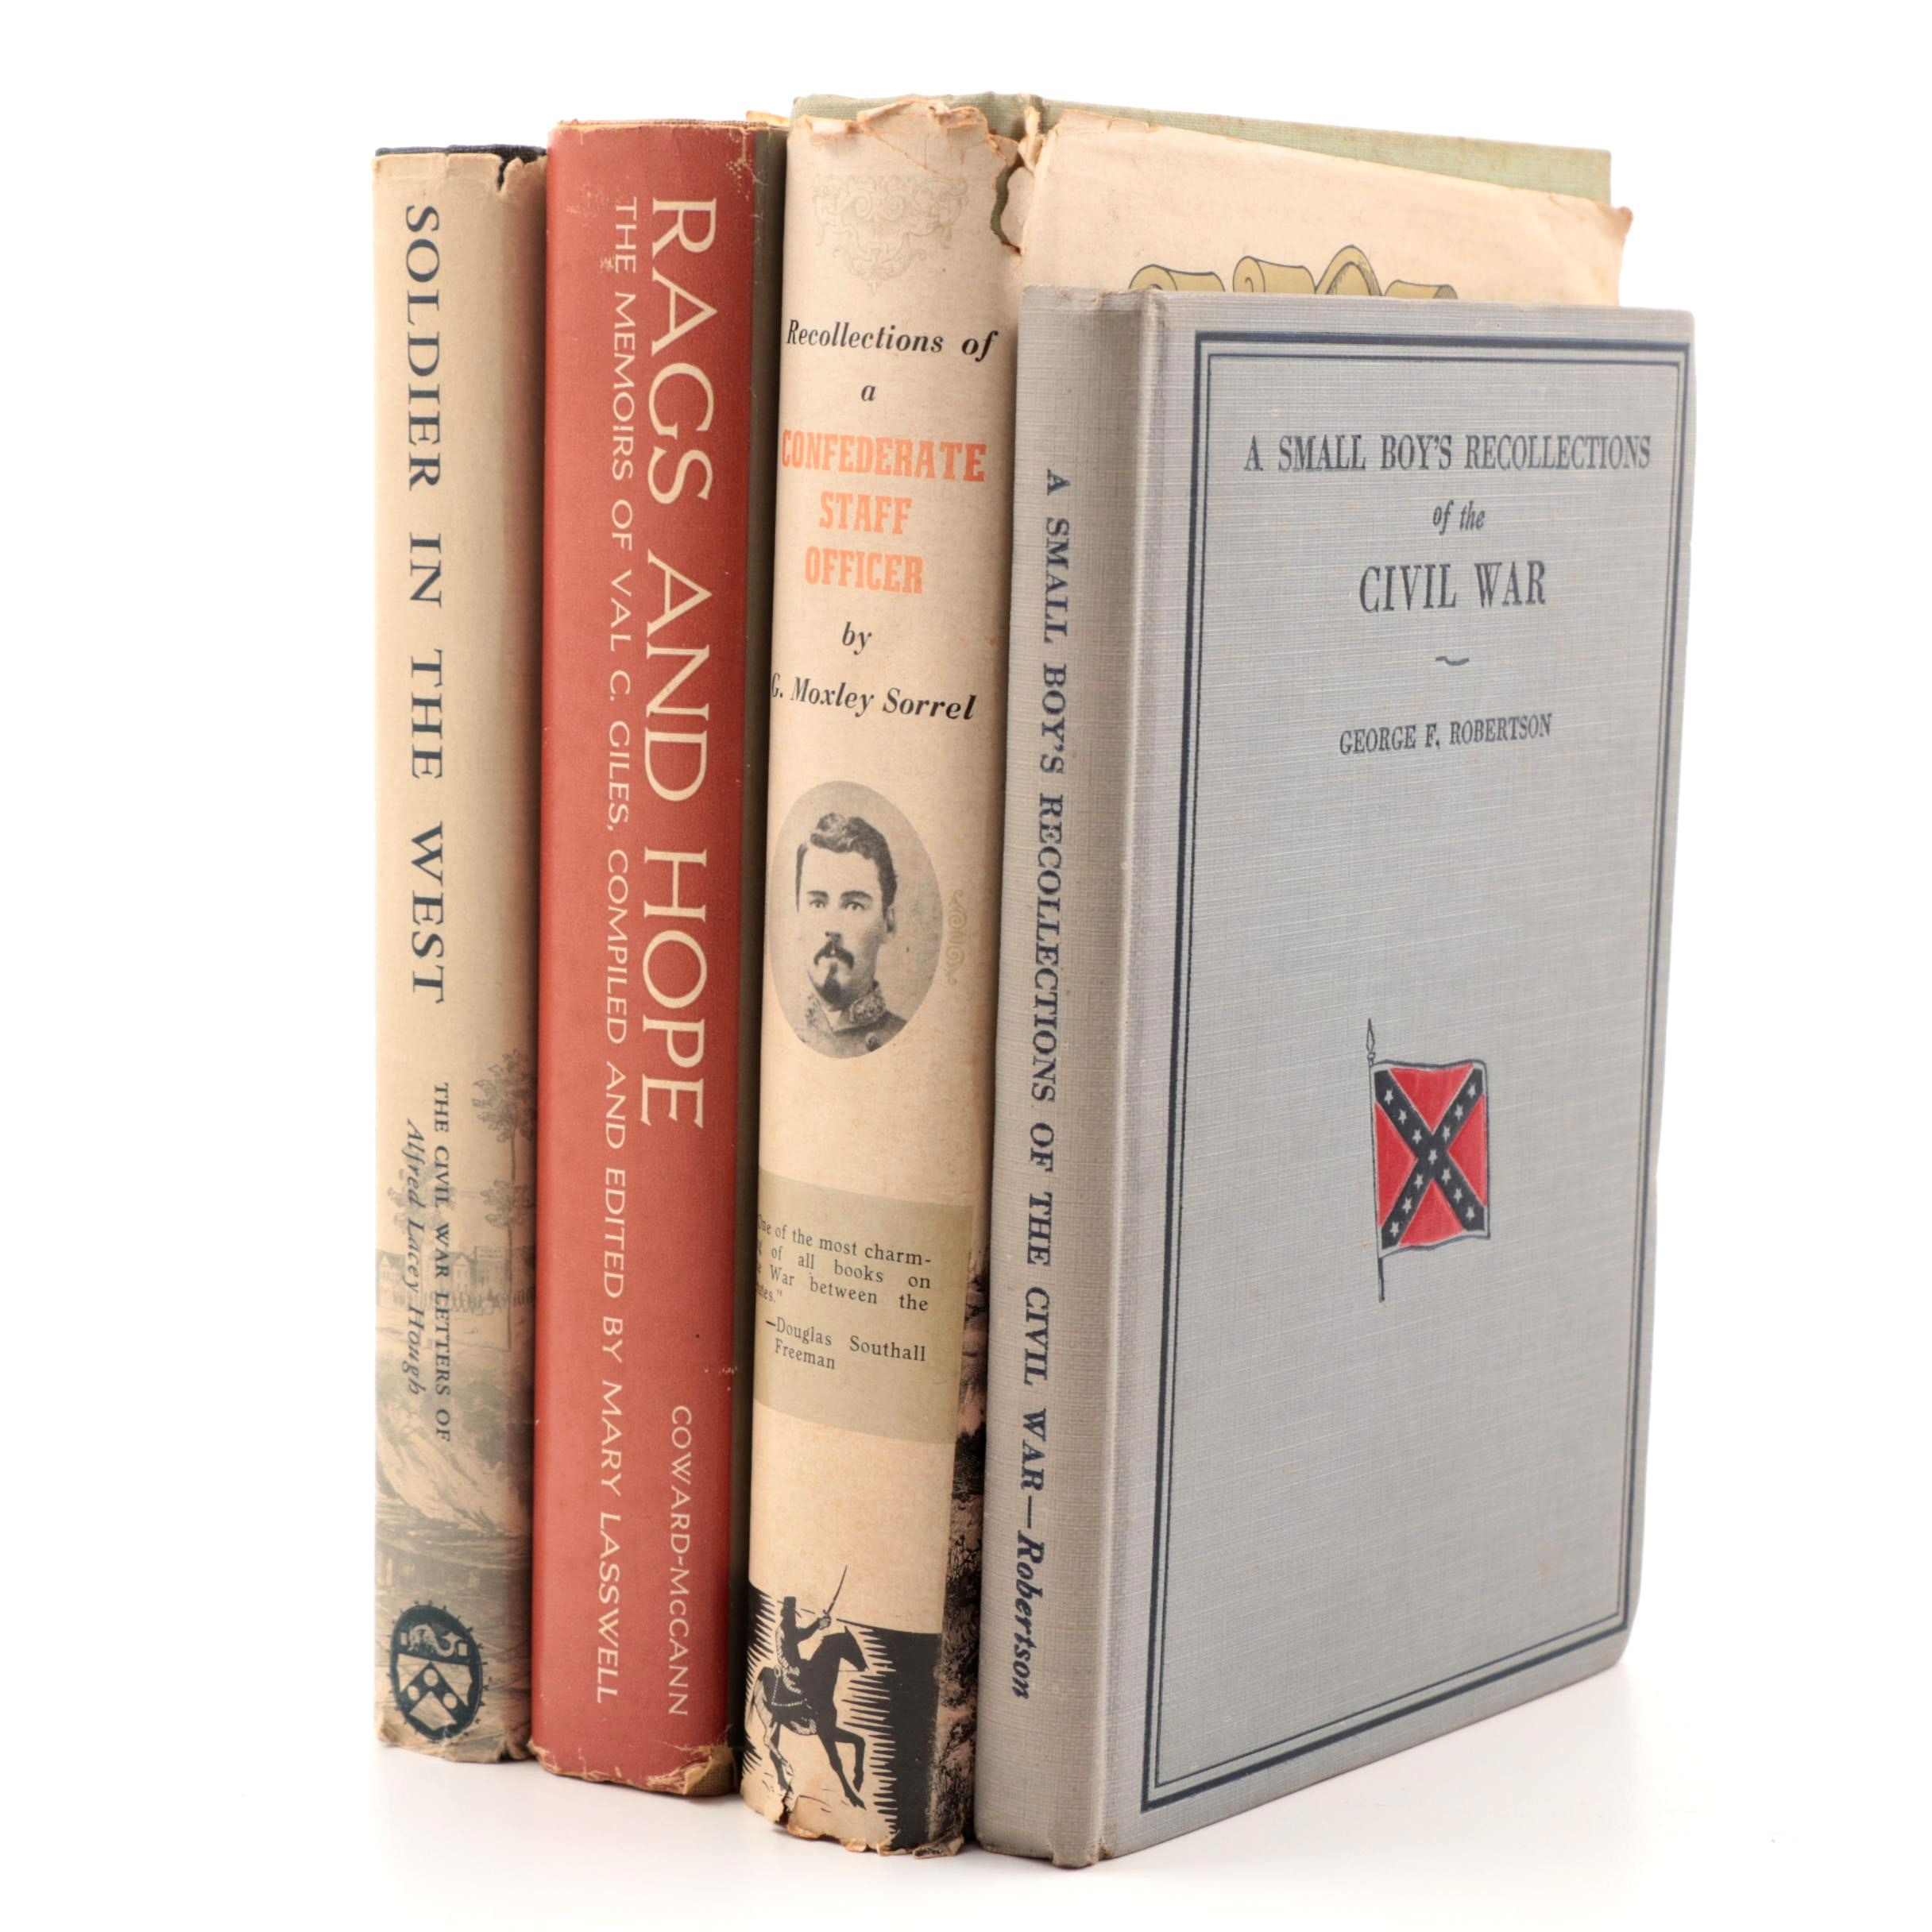 Early to Mid 20th Century Books on the American Civil War Experiences